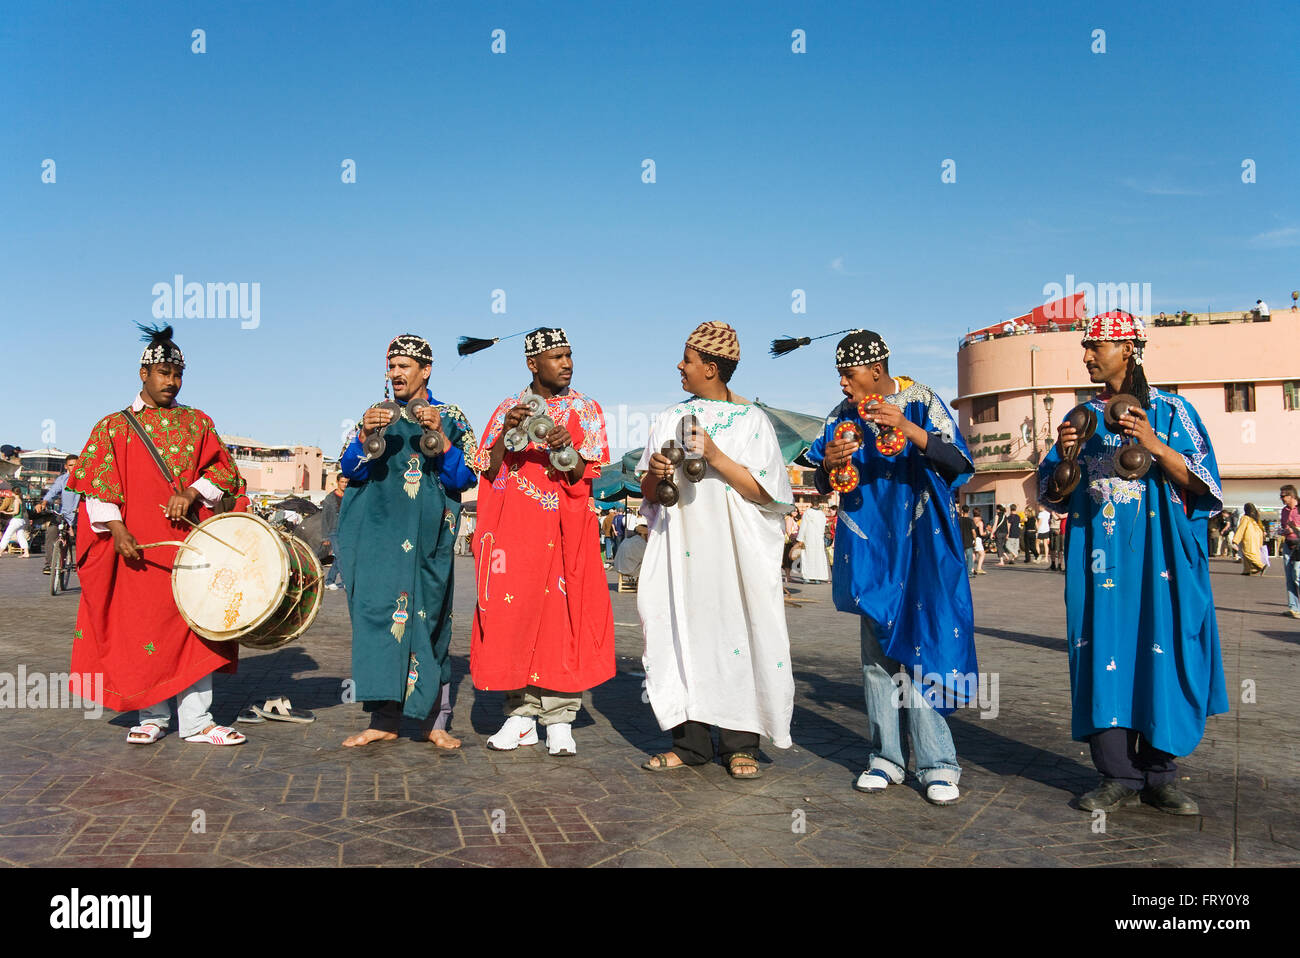 Musicians in colourful clothes at the Jemaa el-Fnaa square in Marrakesh, Morocco Stock Photo